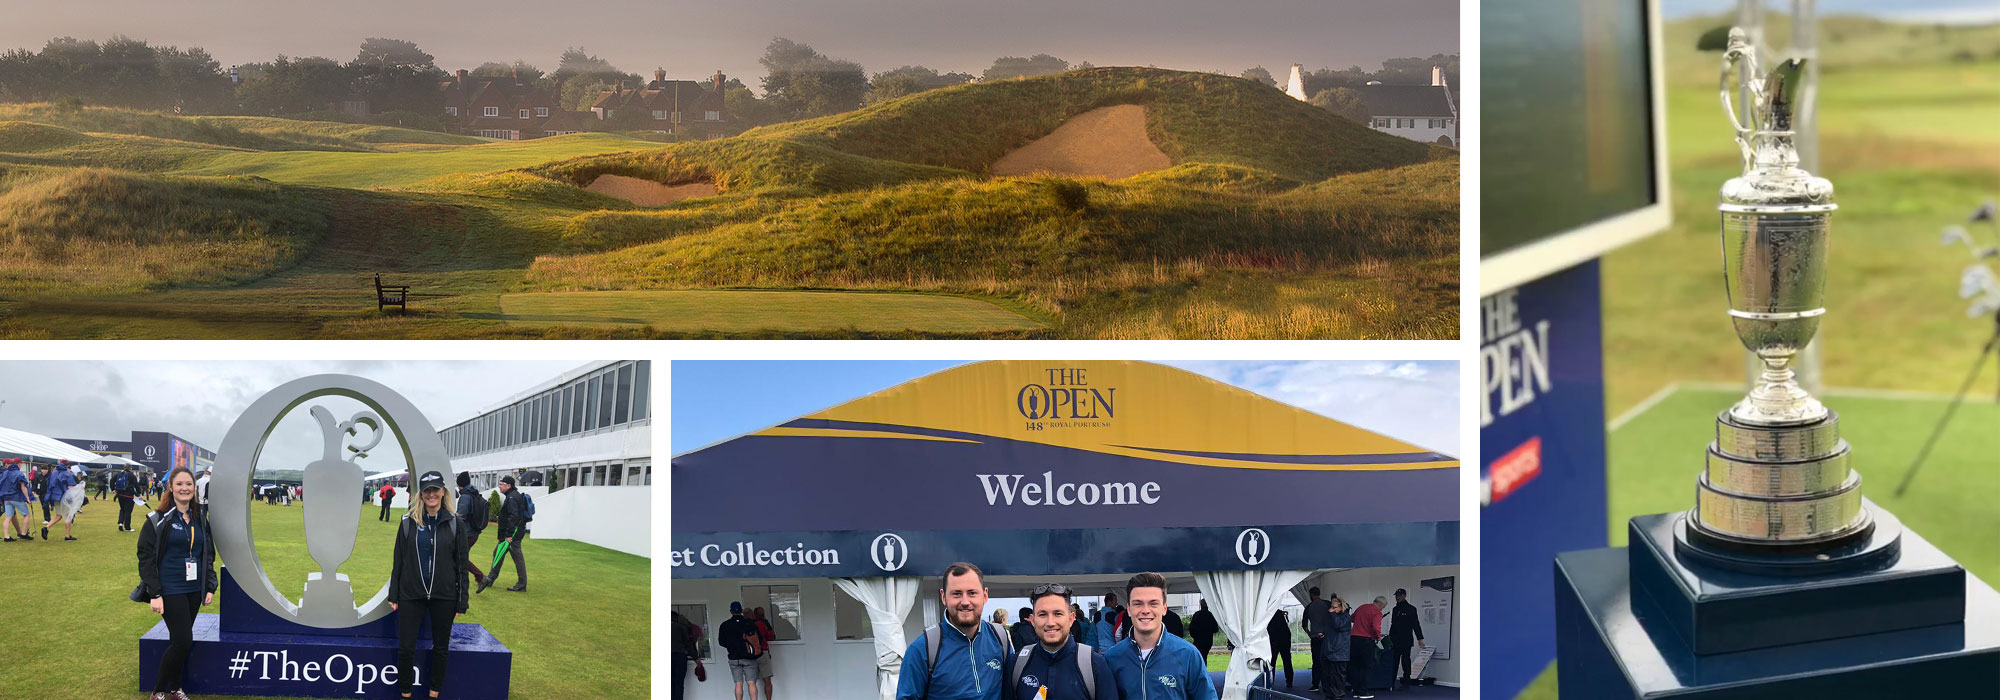 Guide to Royal St George's